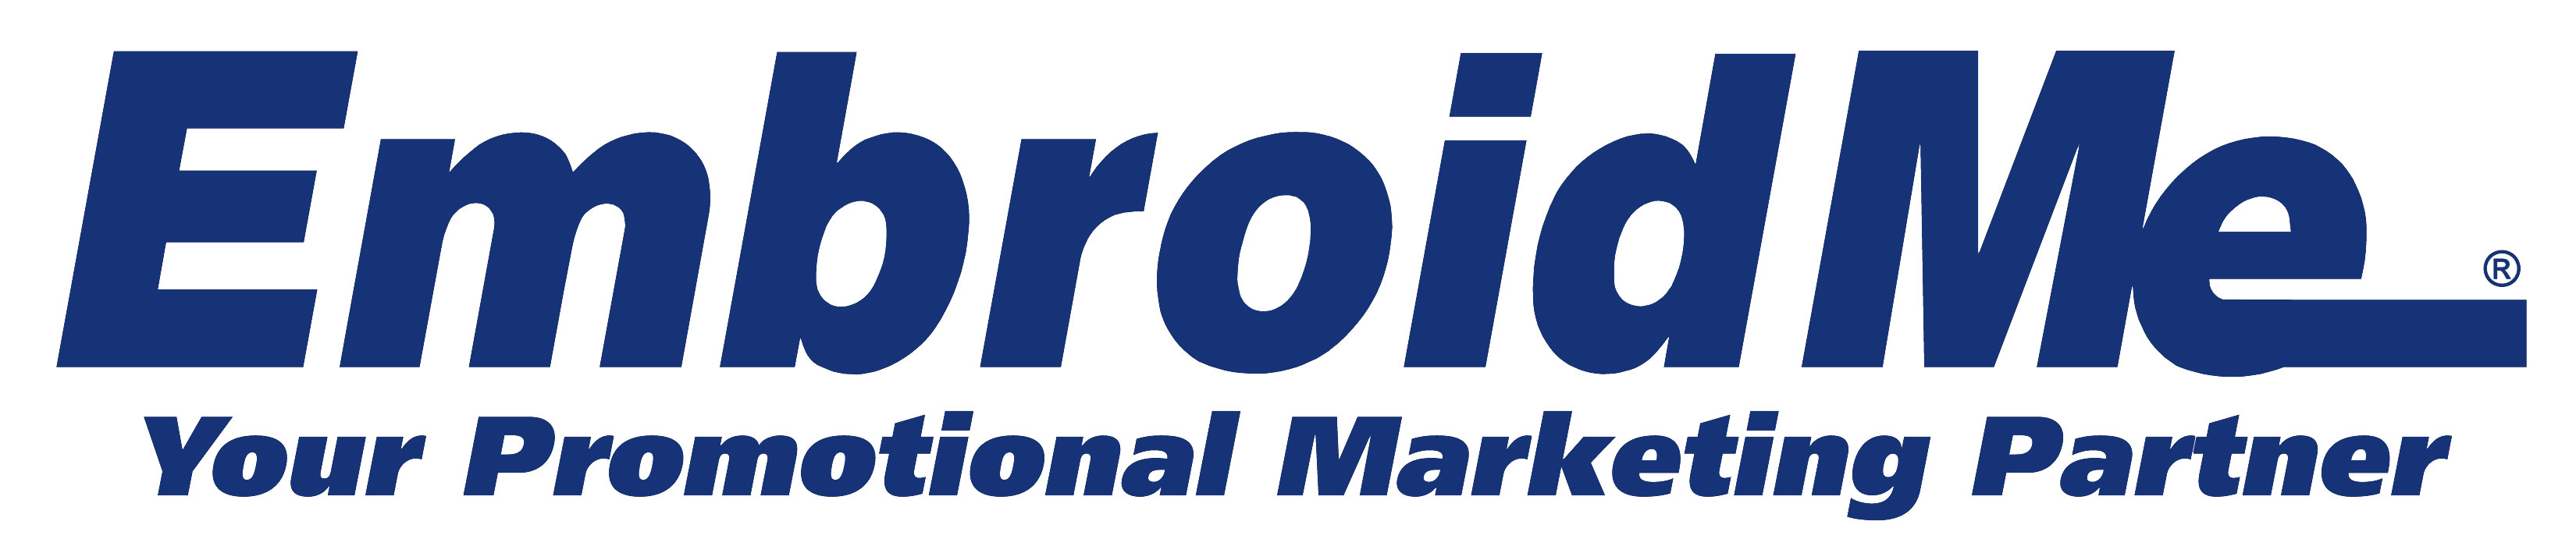 EmbroidMe Your Promotional Marketing Partner